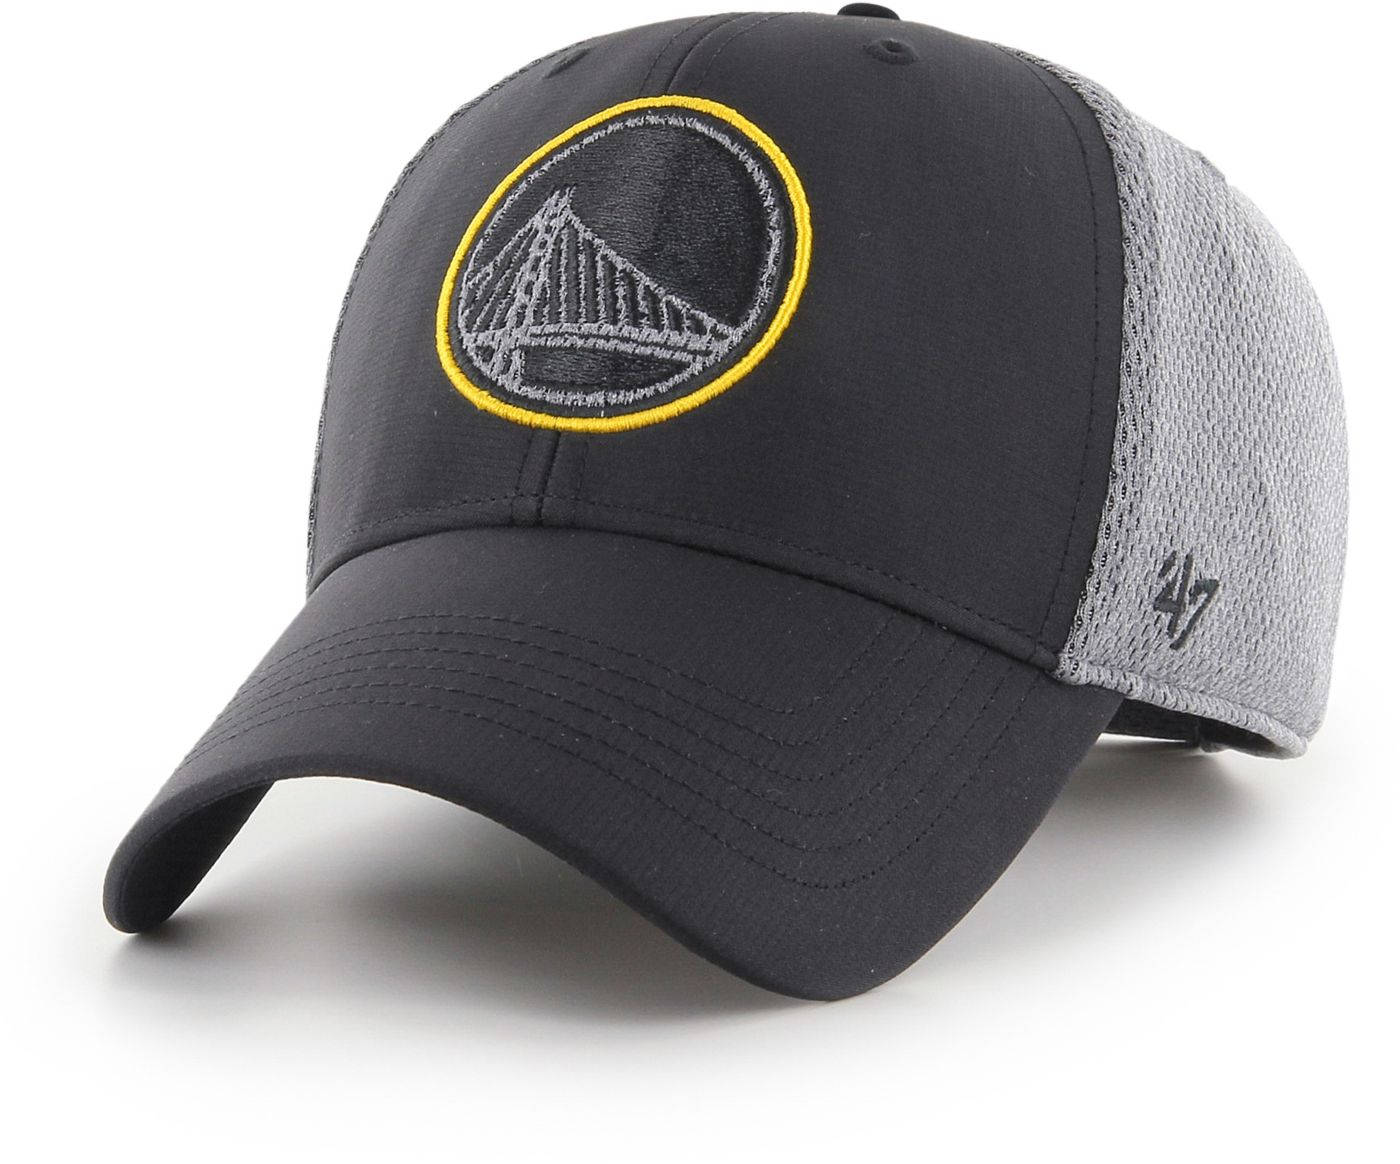 47 Men's Golden State Warriors Arlo MVP Black Adjustable Hat